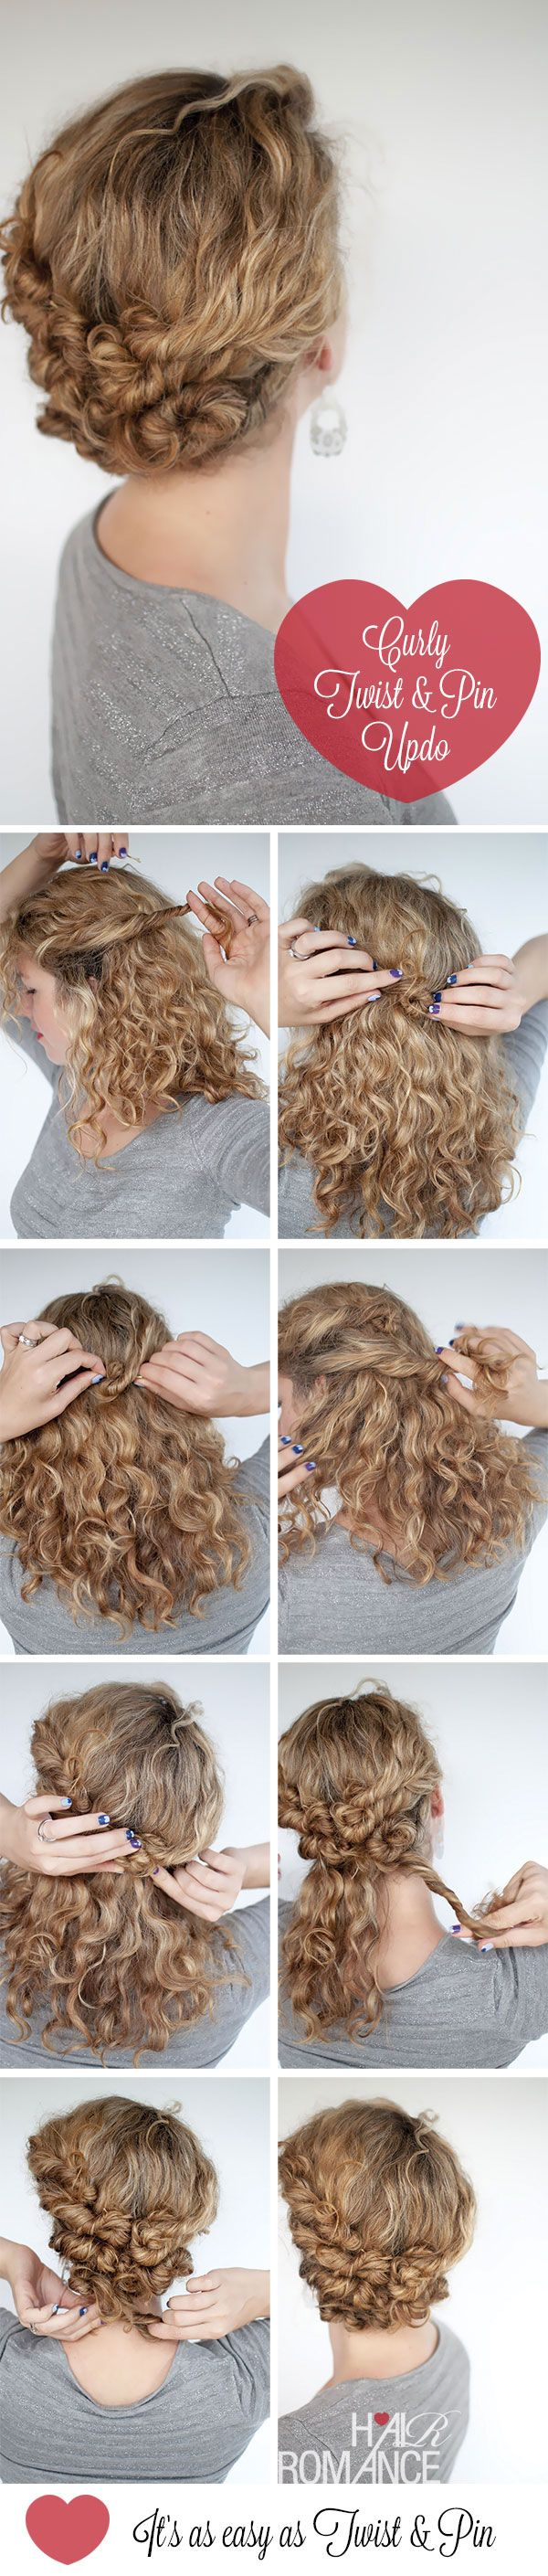 Hairstyle Tutorial Easy Twist And Pin Updo For Curly Hair Hair Romance Hair Styles Curly Hair Styles Naturally Curly Hair Styles